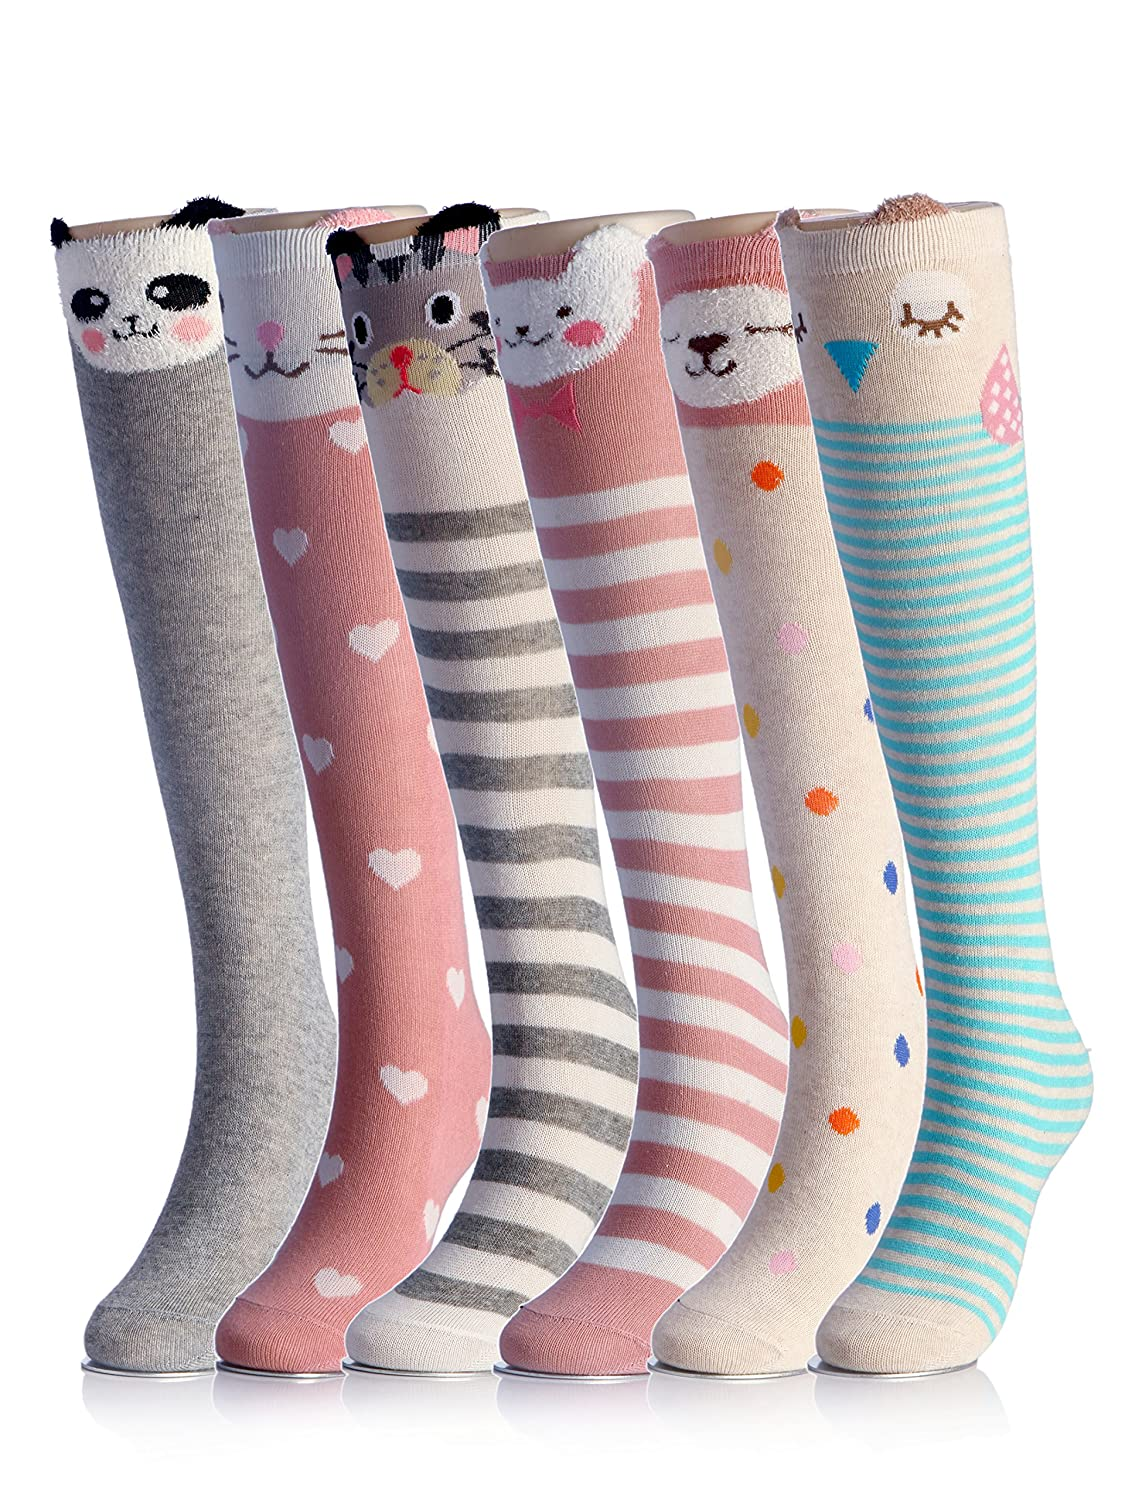 6dcc3d34b FASHION DESIGN - Cute Cartoon pattern knee high socks keep your girls warm  with ...